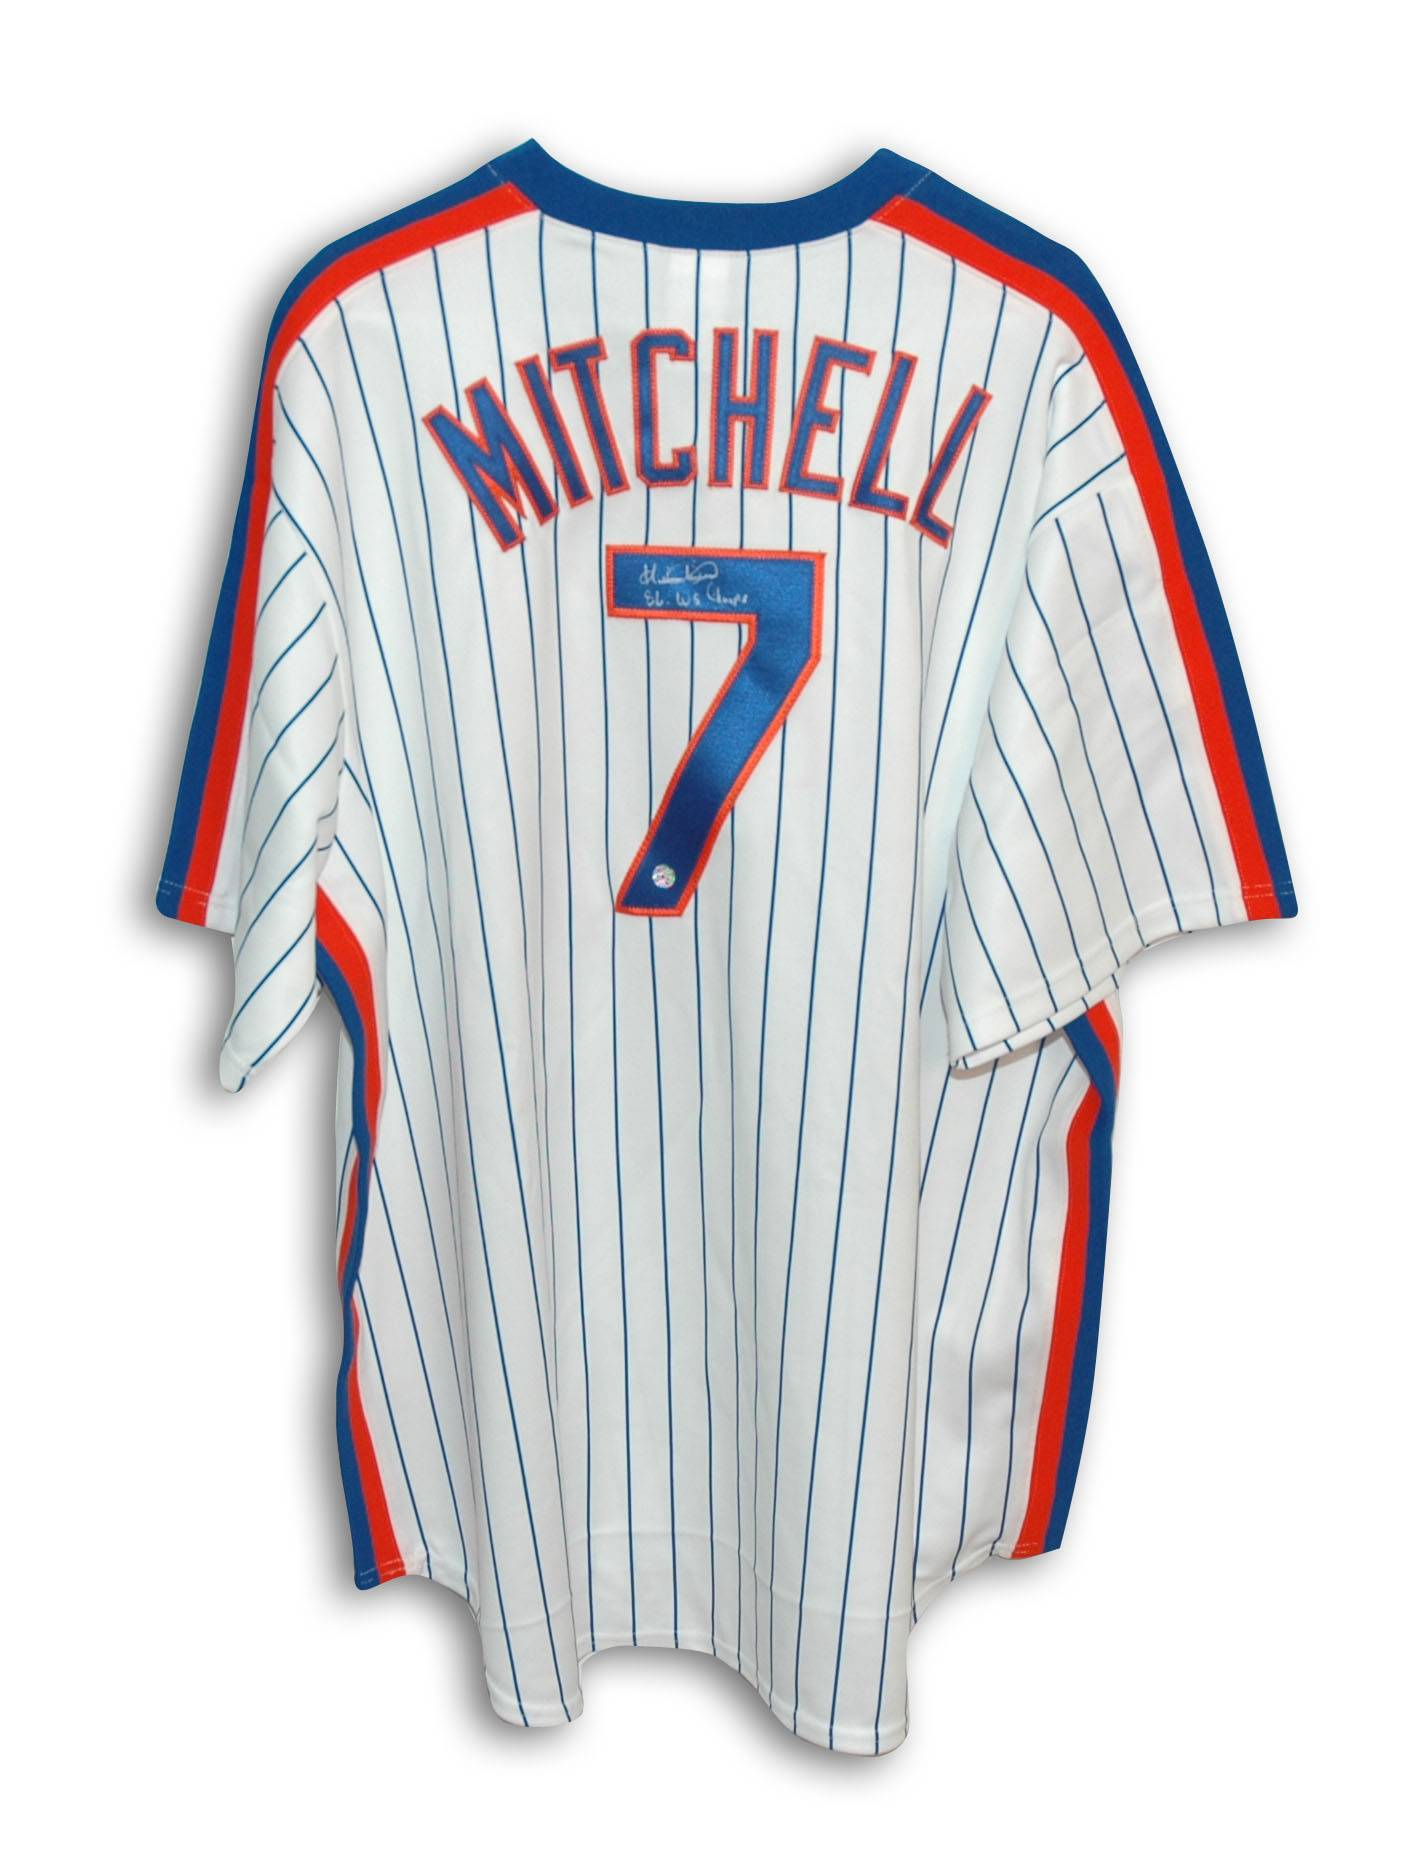 newest 5ca8b 92c9f Kevin Mitchell New York Mets Autographed Pinstripe Majestic Jersey  Inscribed